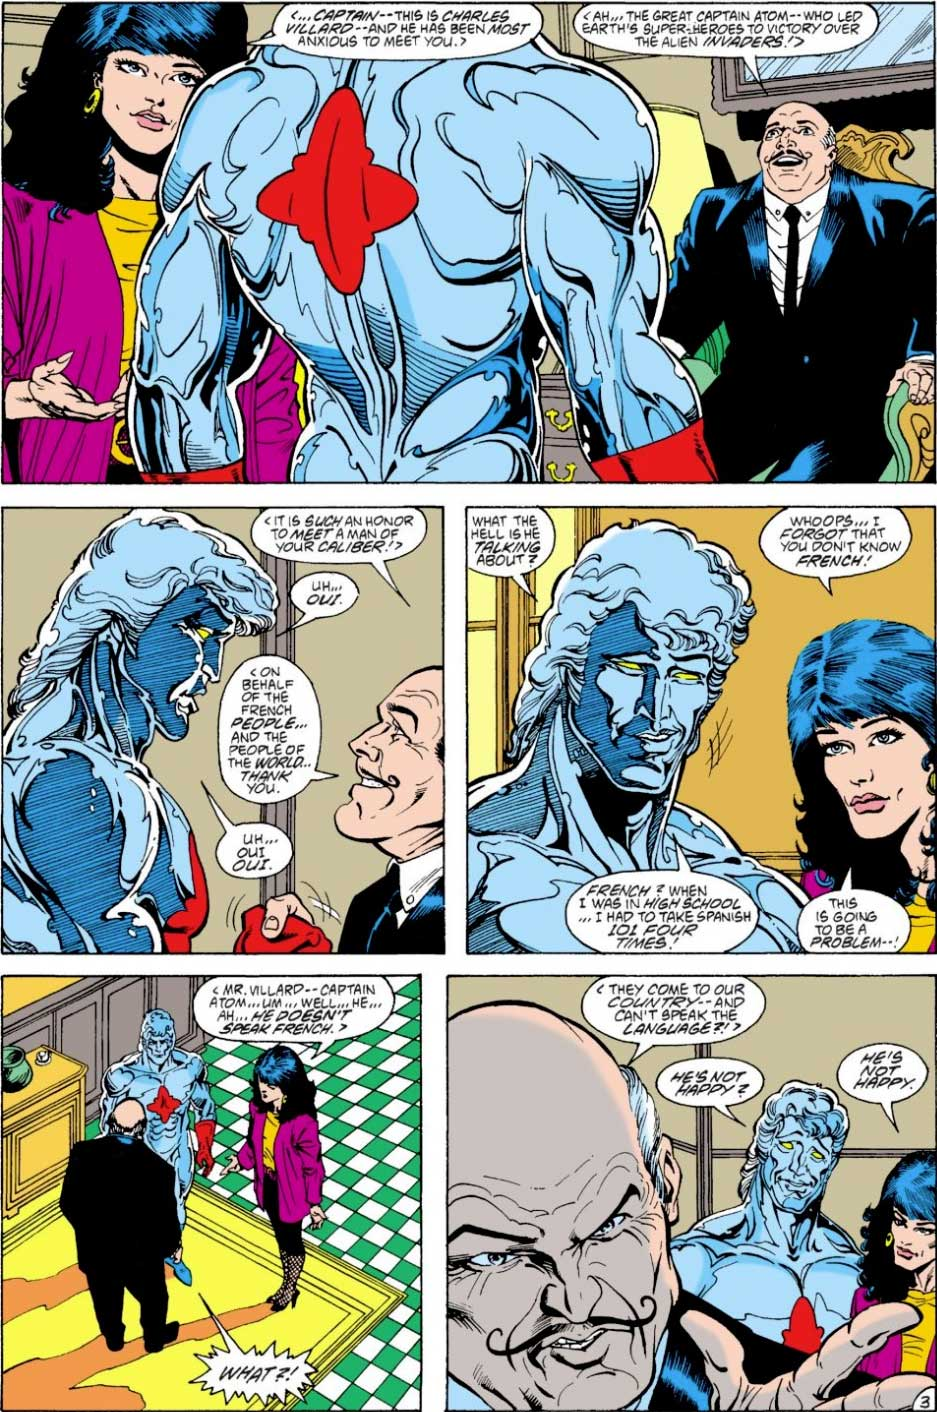 Justice League Europe #3 interiors by Keith Giffen, JM DeMatteis, Bart Sears and Pablo Marcos